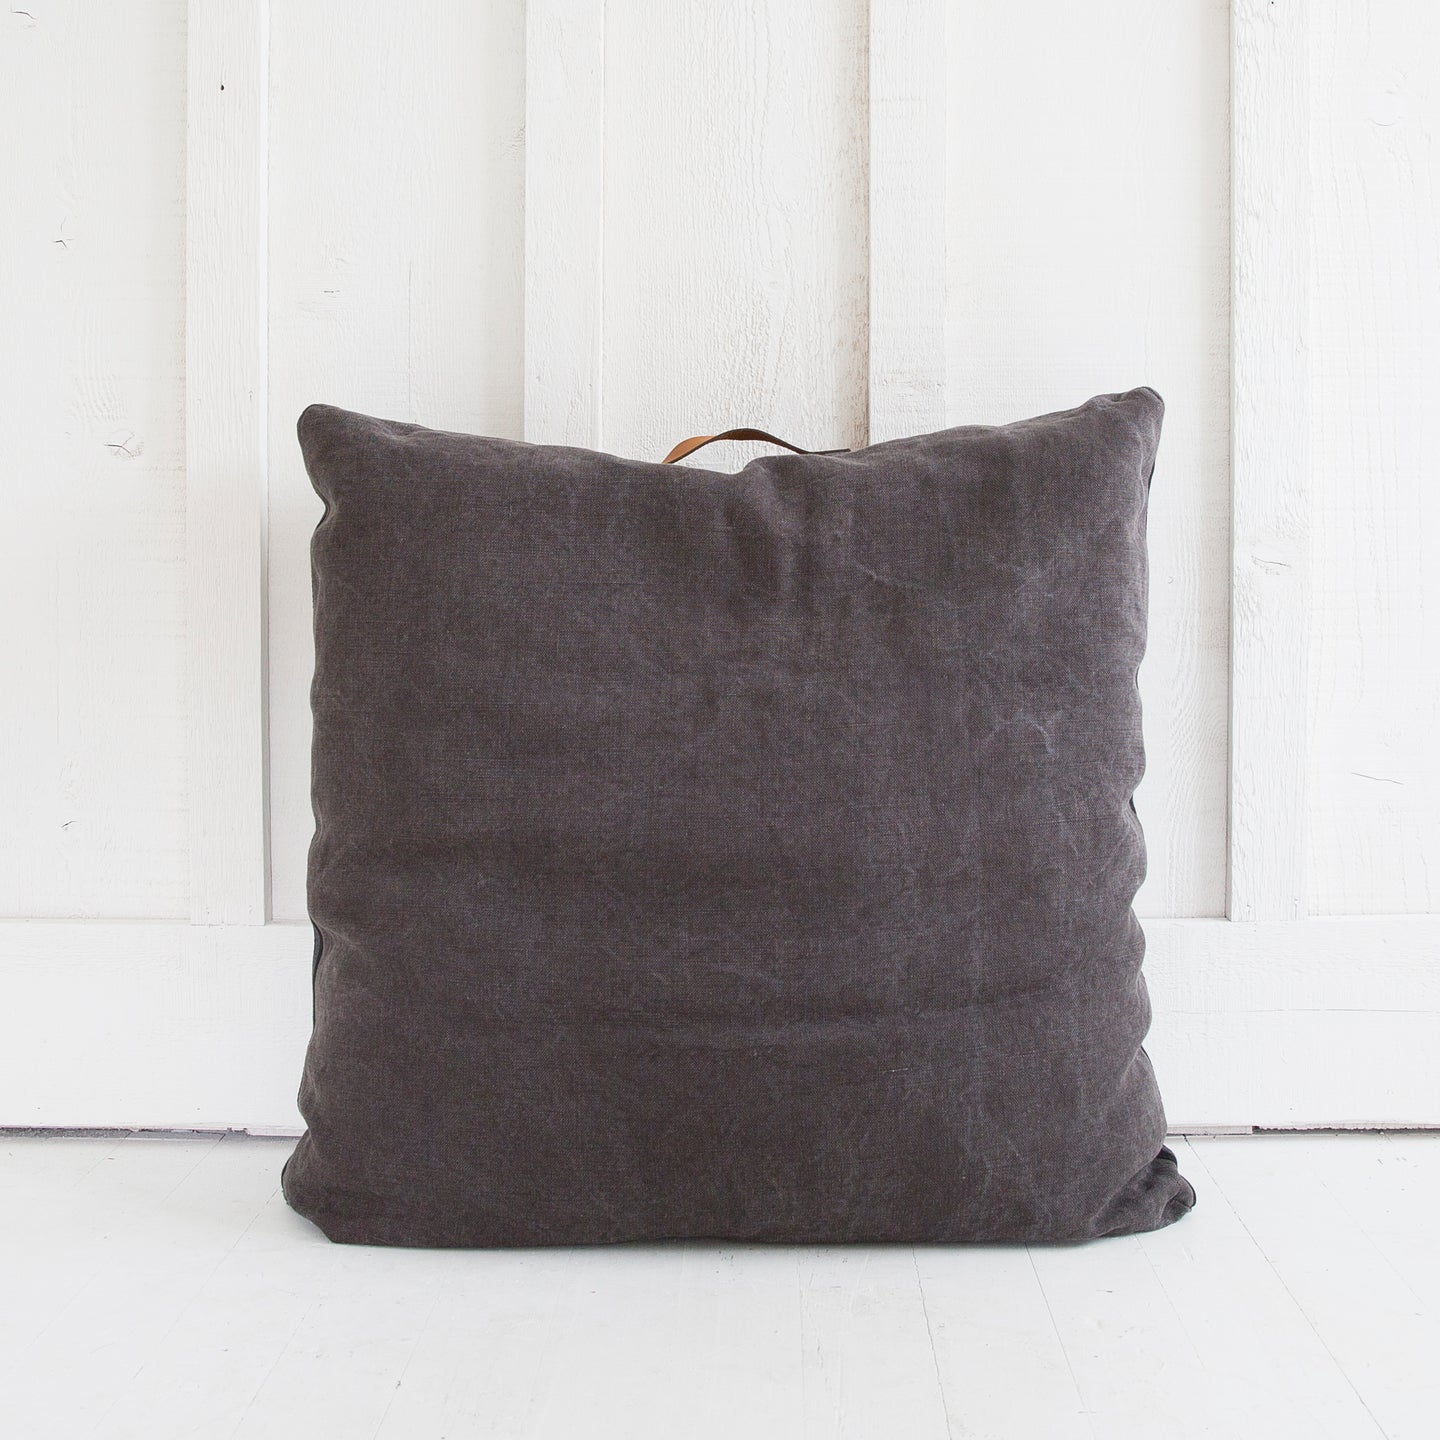 Linen and Leather Floor Pillow